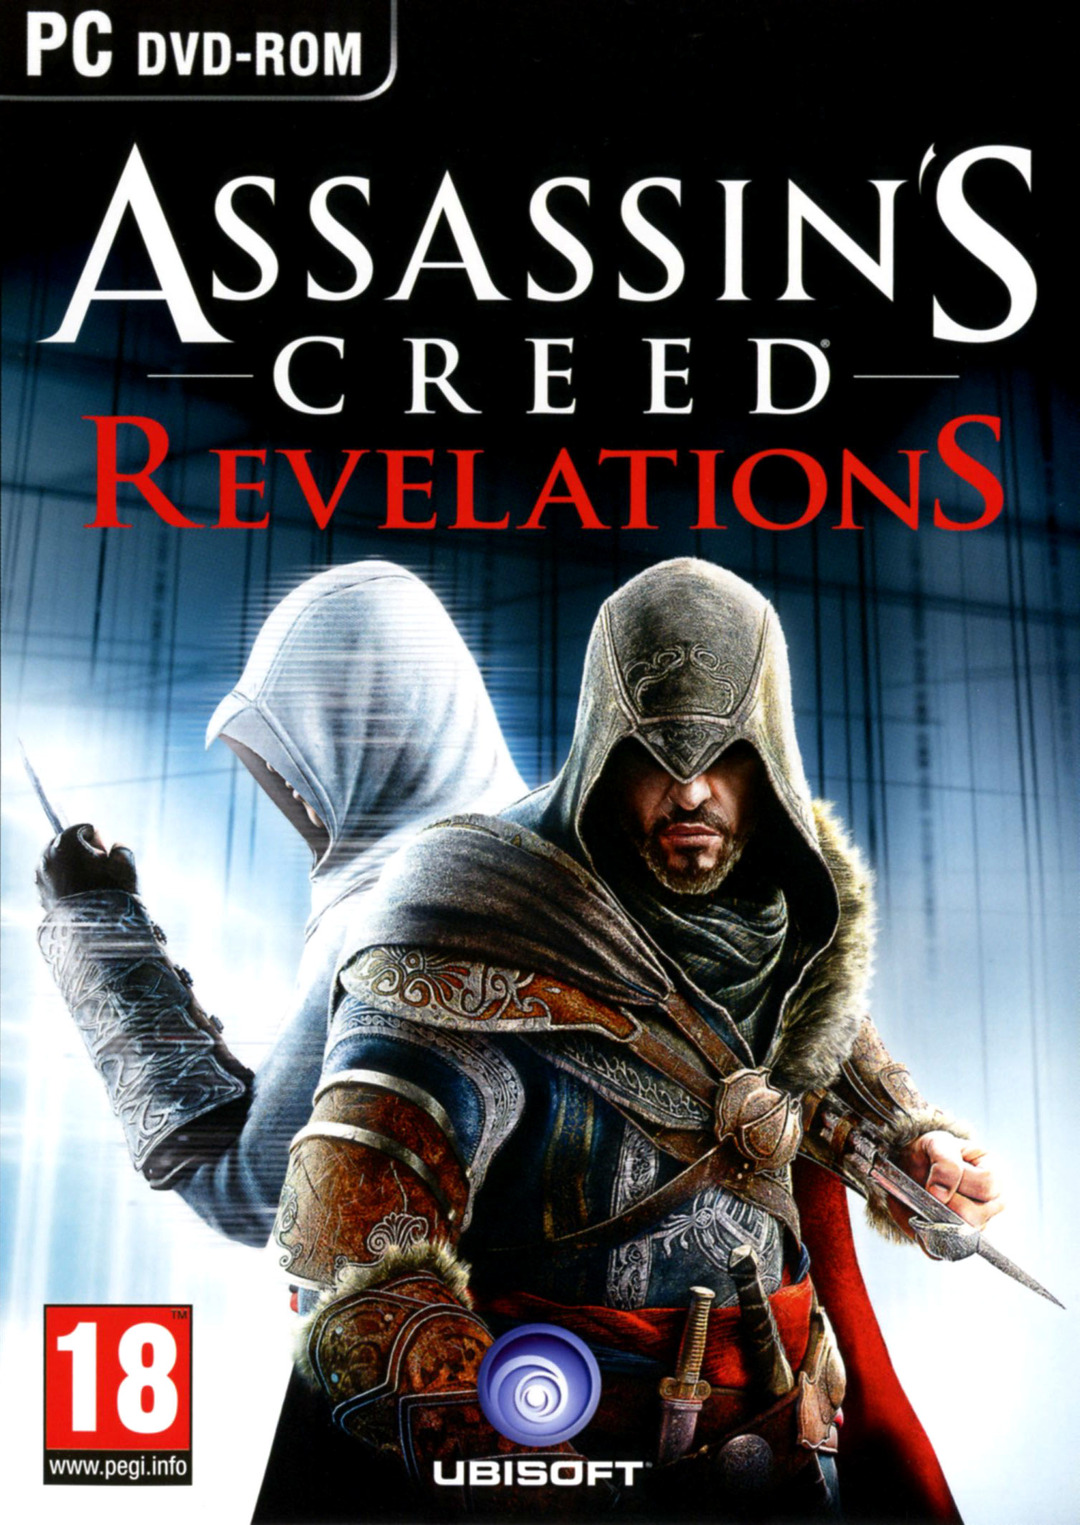 assassin's creed REVIEYTIONS  تکی 2000تومان    عمده1100تومان(هر5عدد)